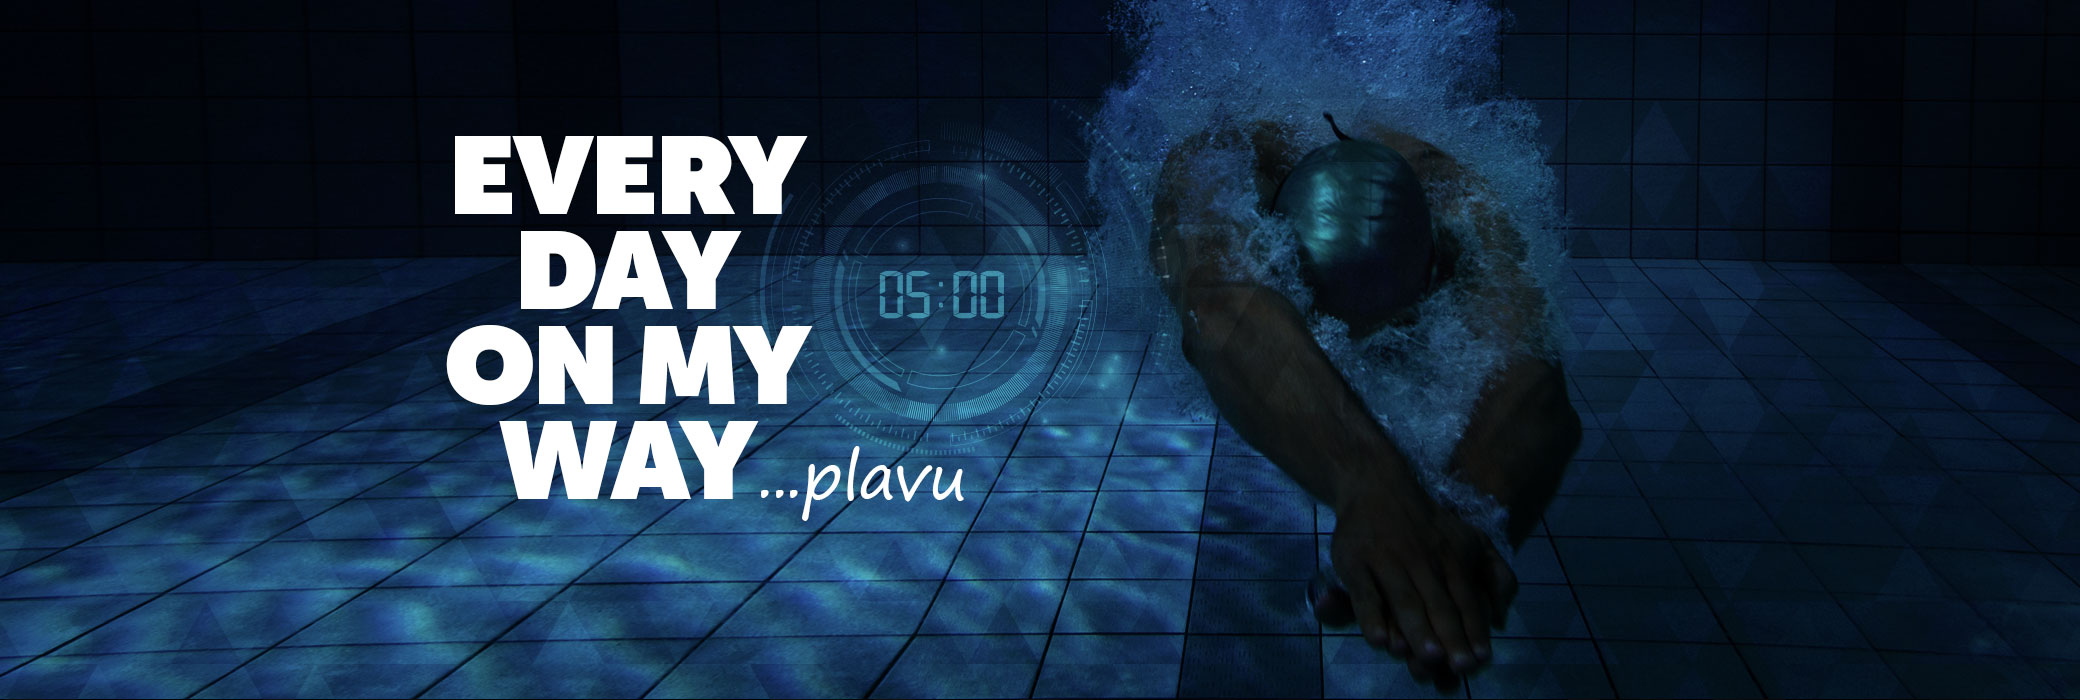 EVERY DAY ON MY WAY - plavu